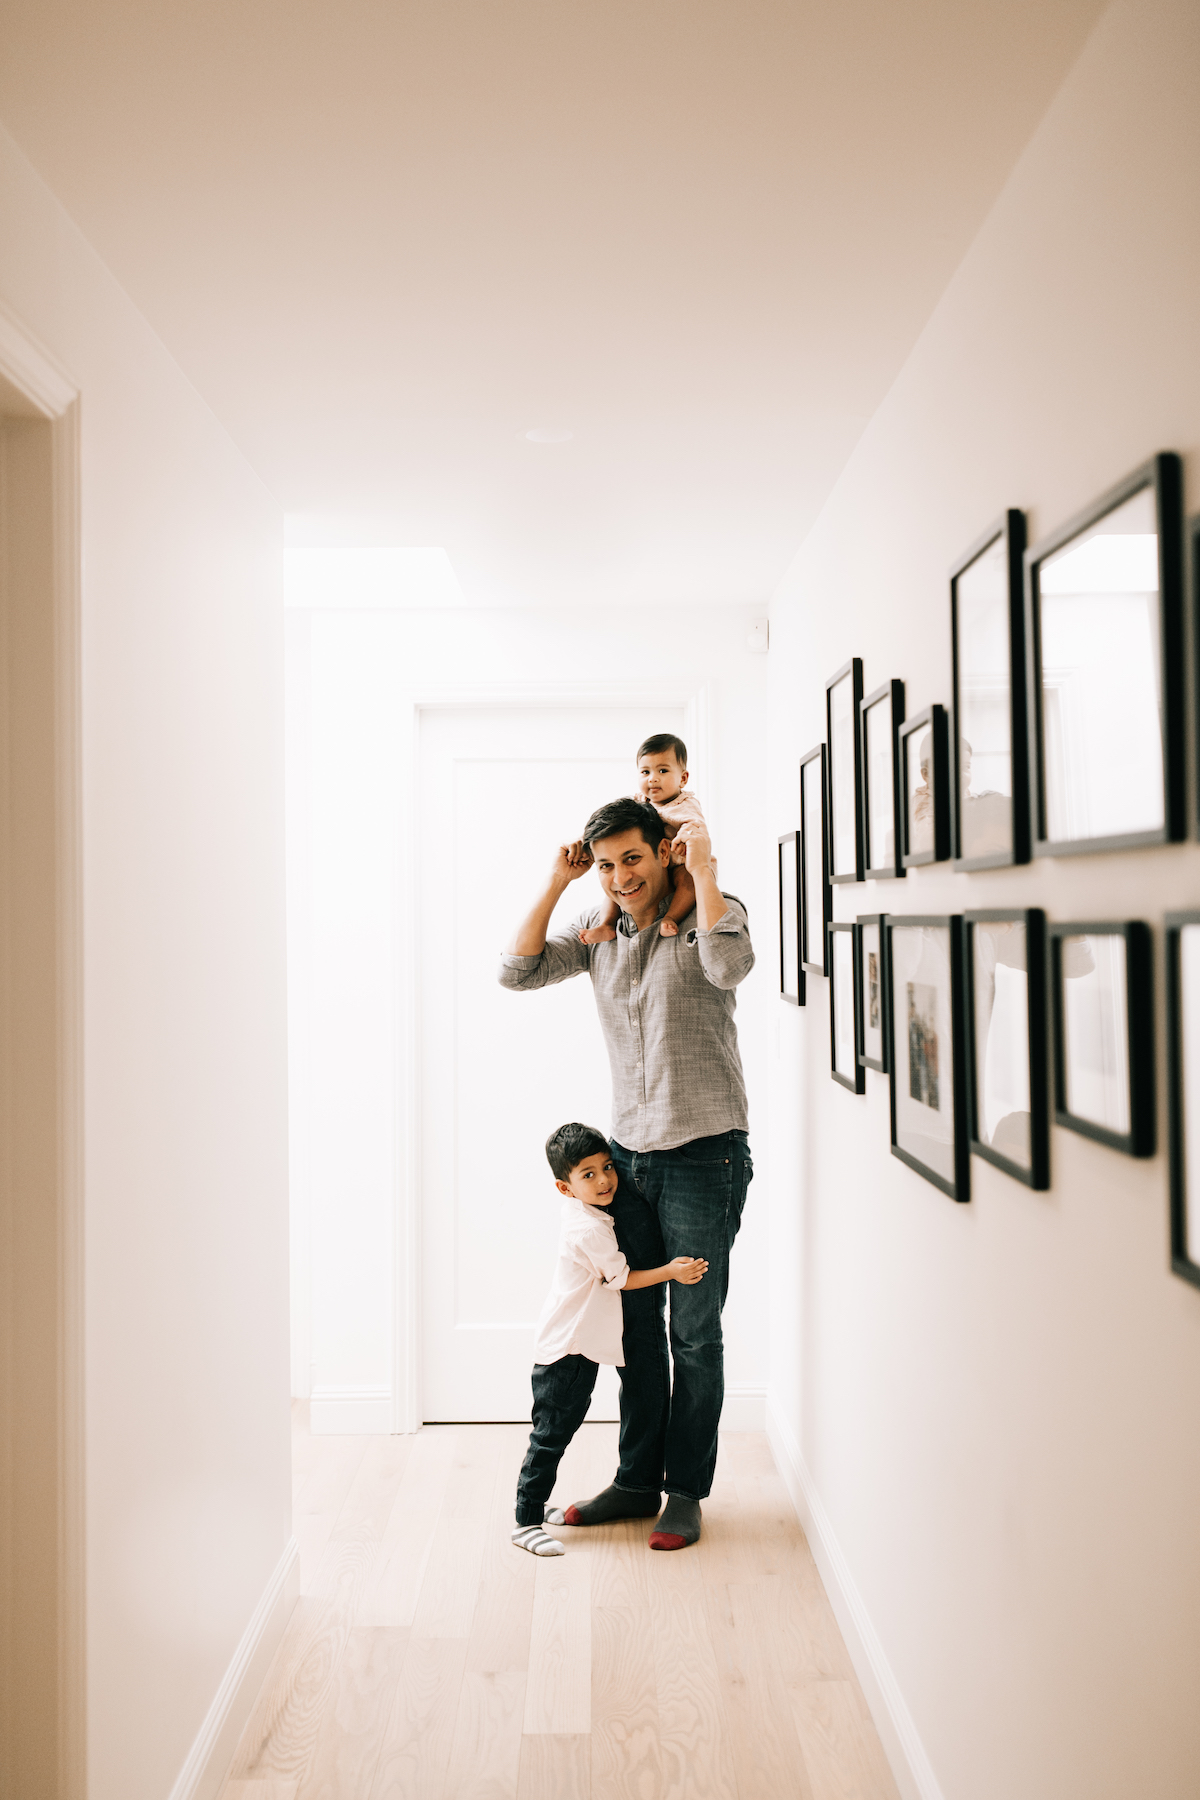 Father with children in brightly lit hallway